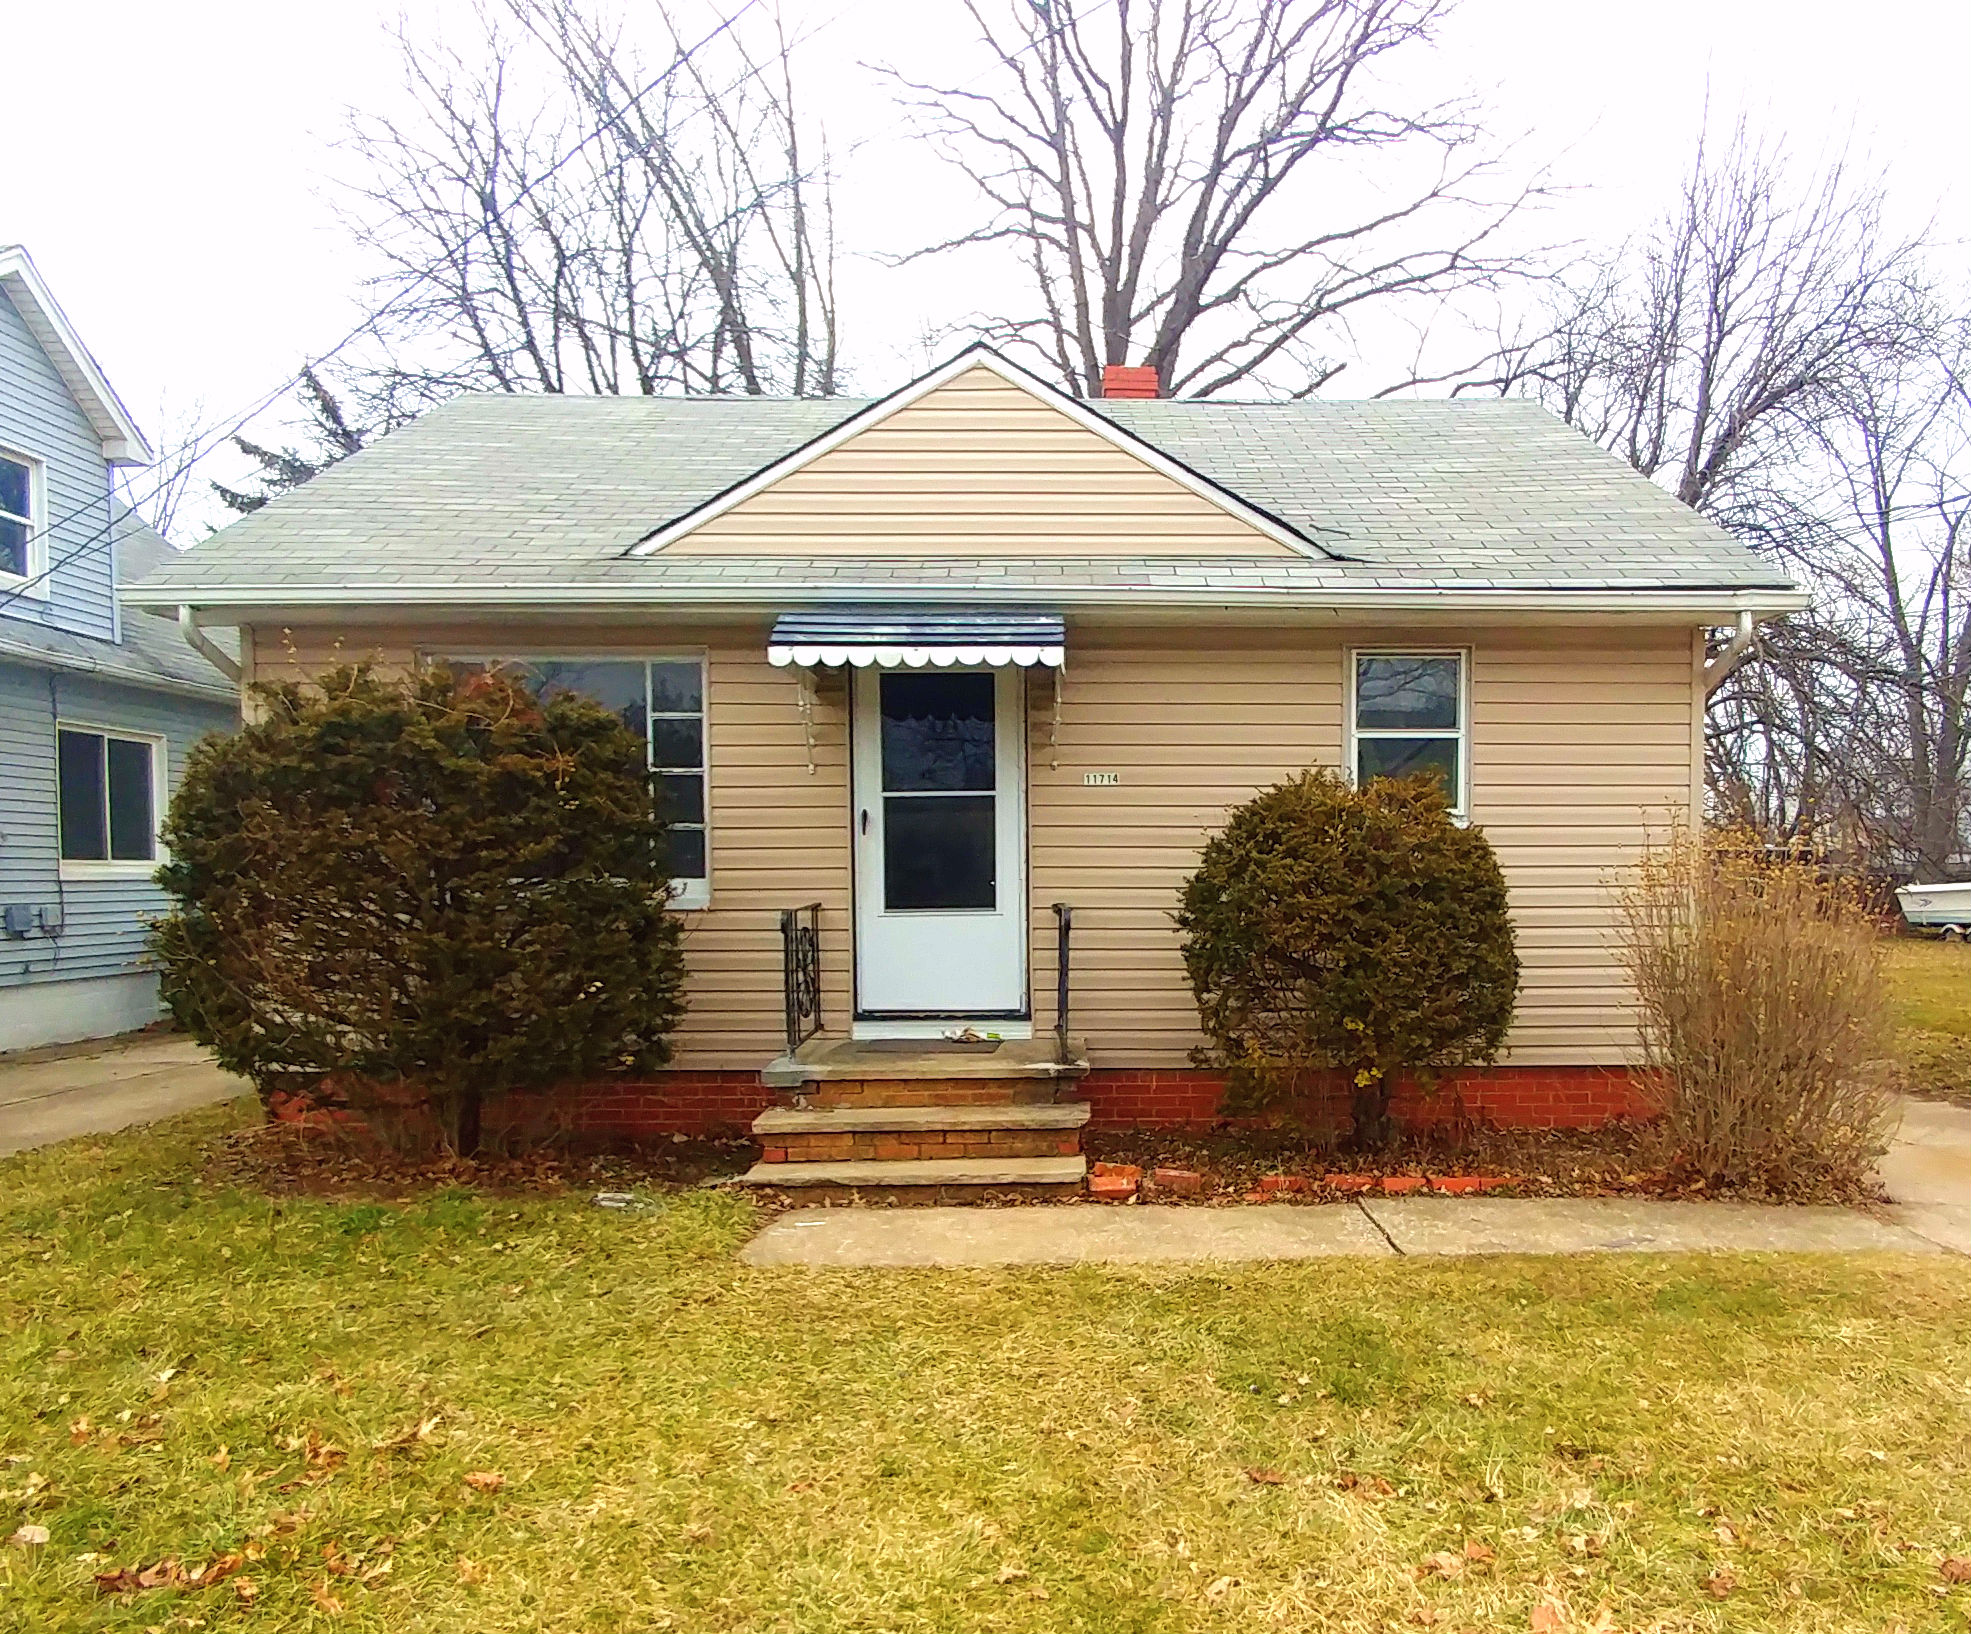 11714 Brookfield Ave., Cleveland | 2 bed 1 bath | 674 Sq. Ft. $32,500